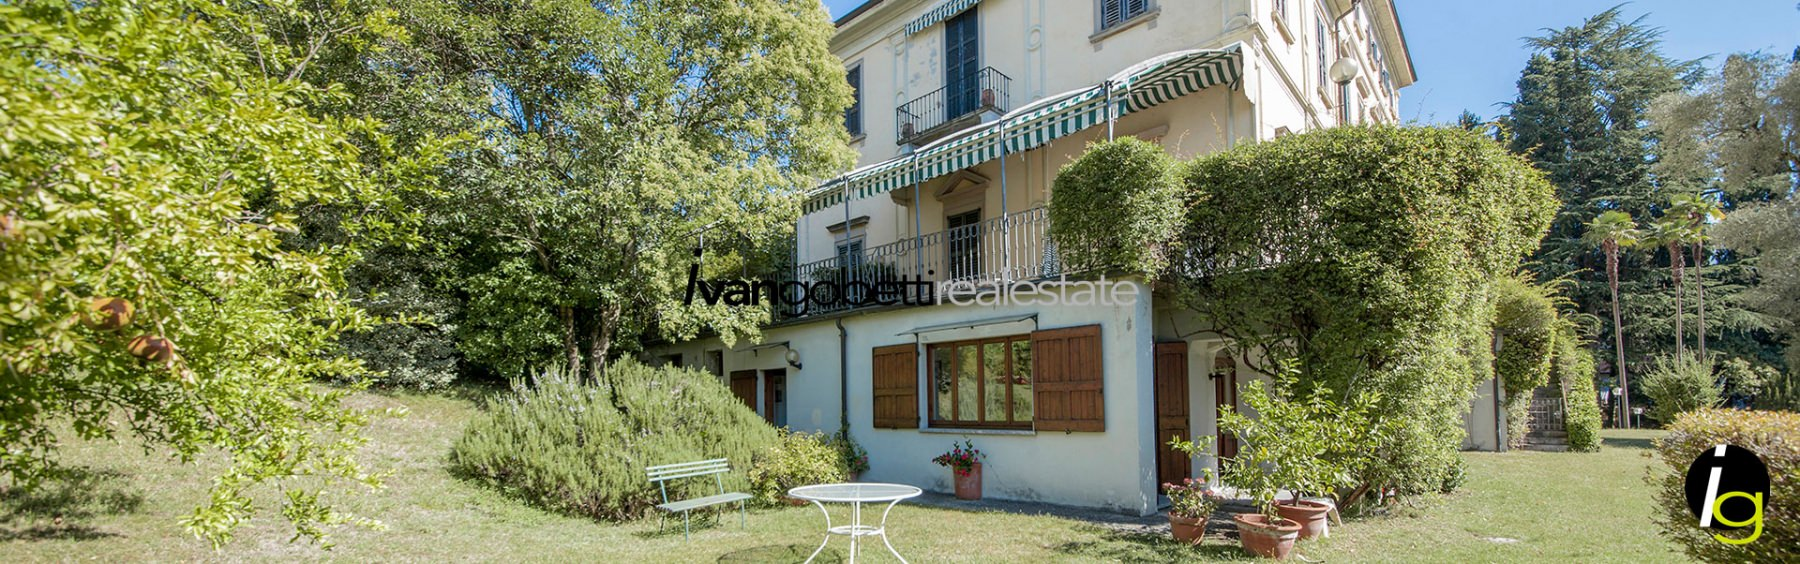 Tremezzo, on Lake Como wonderful apartment in a historic villa for sale